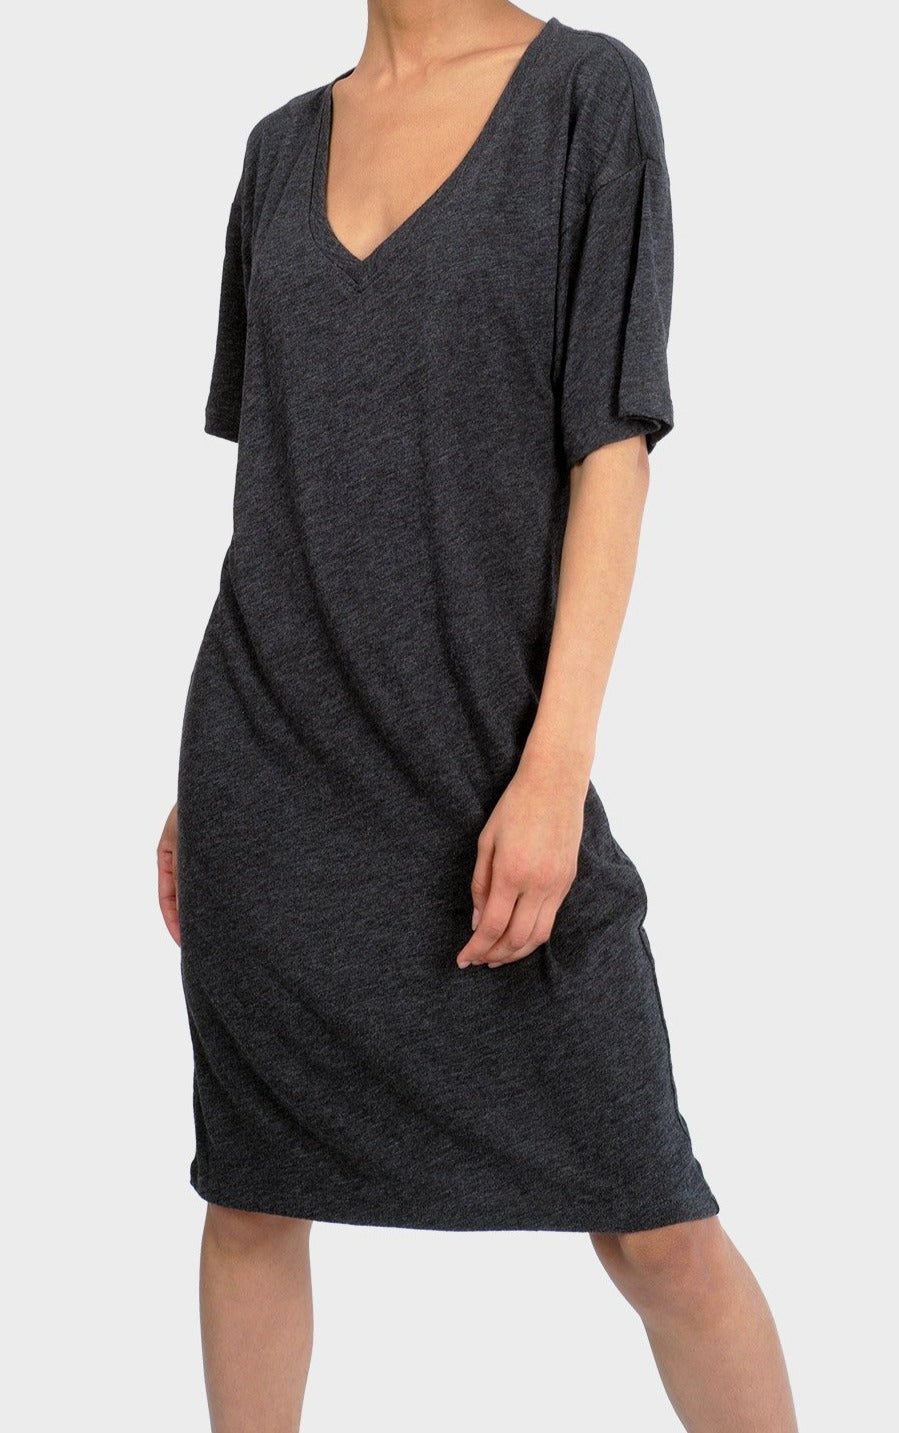 Mika T-shirt Dress in Heather Charcoal